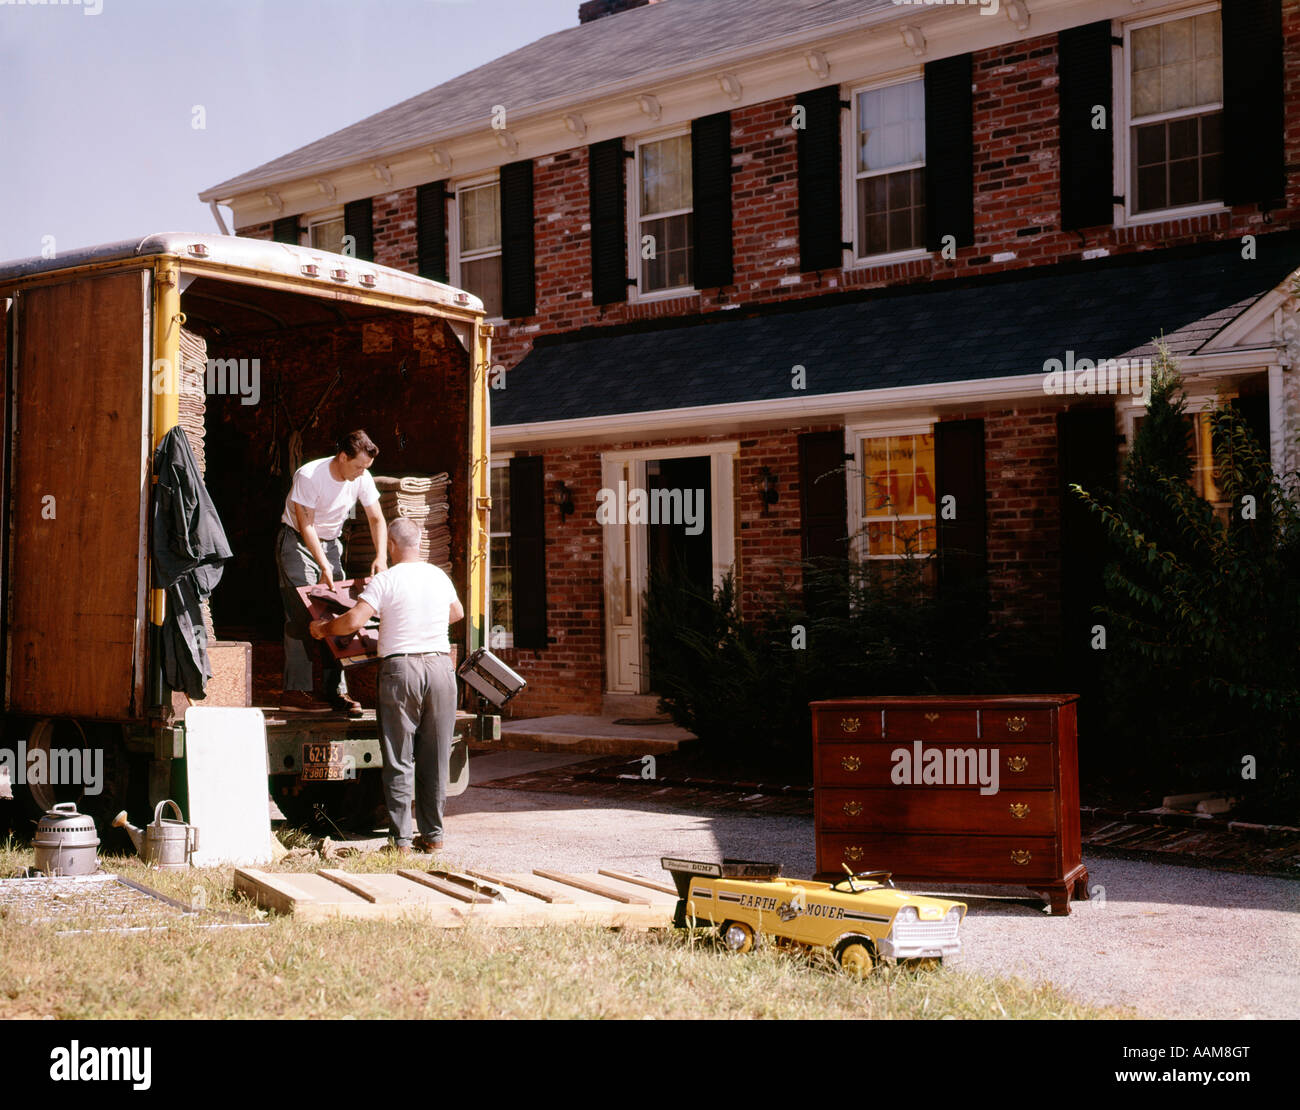 1970s 2 men workers movers load unload back of truck moving van furniture house new brick